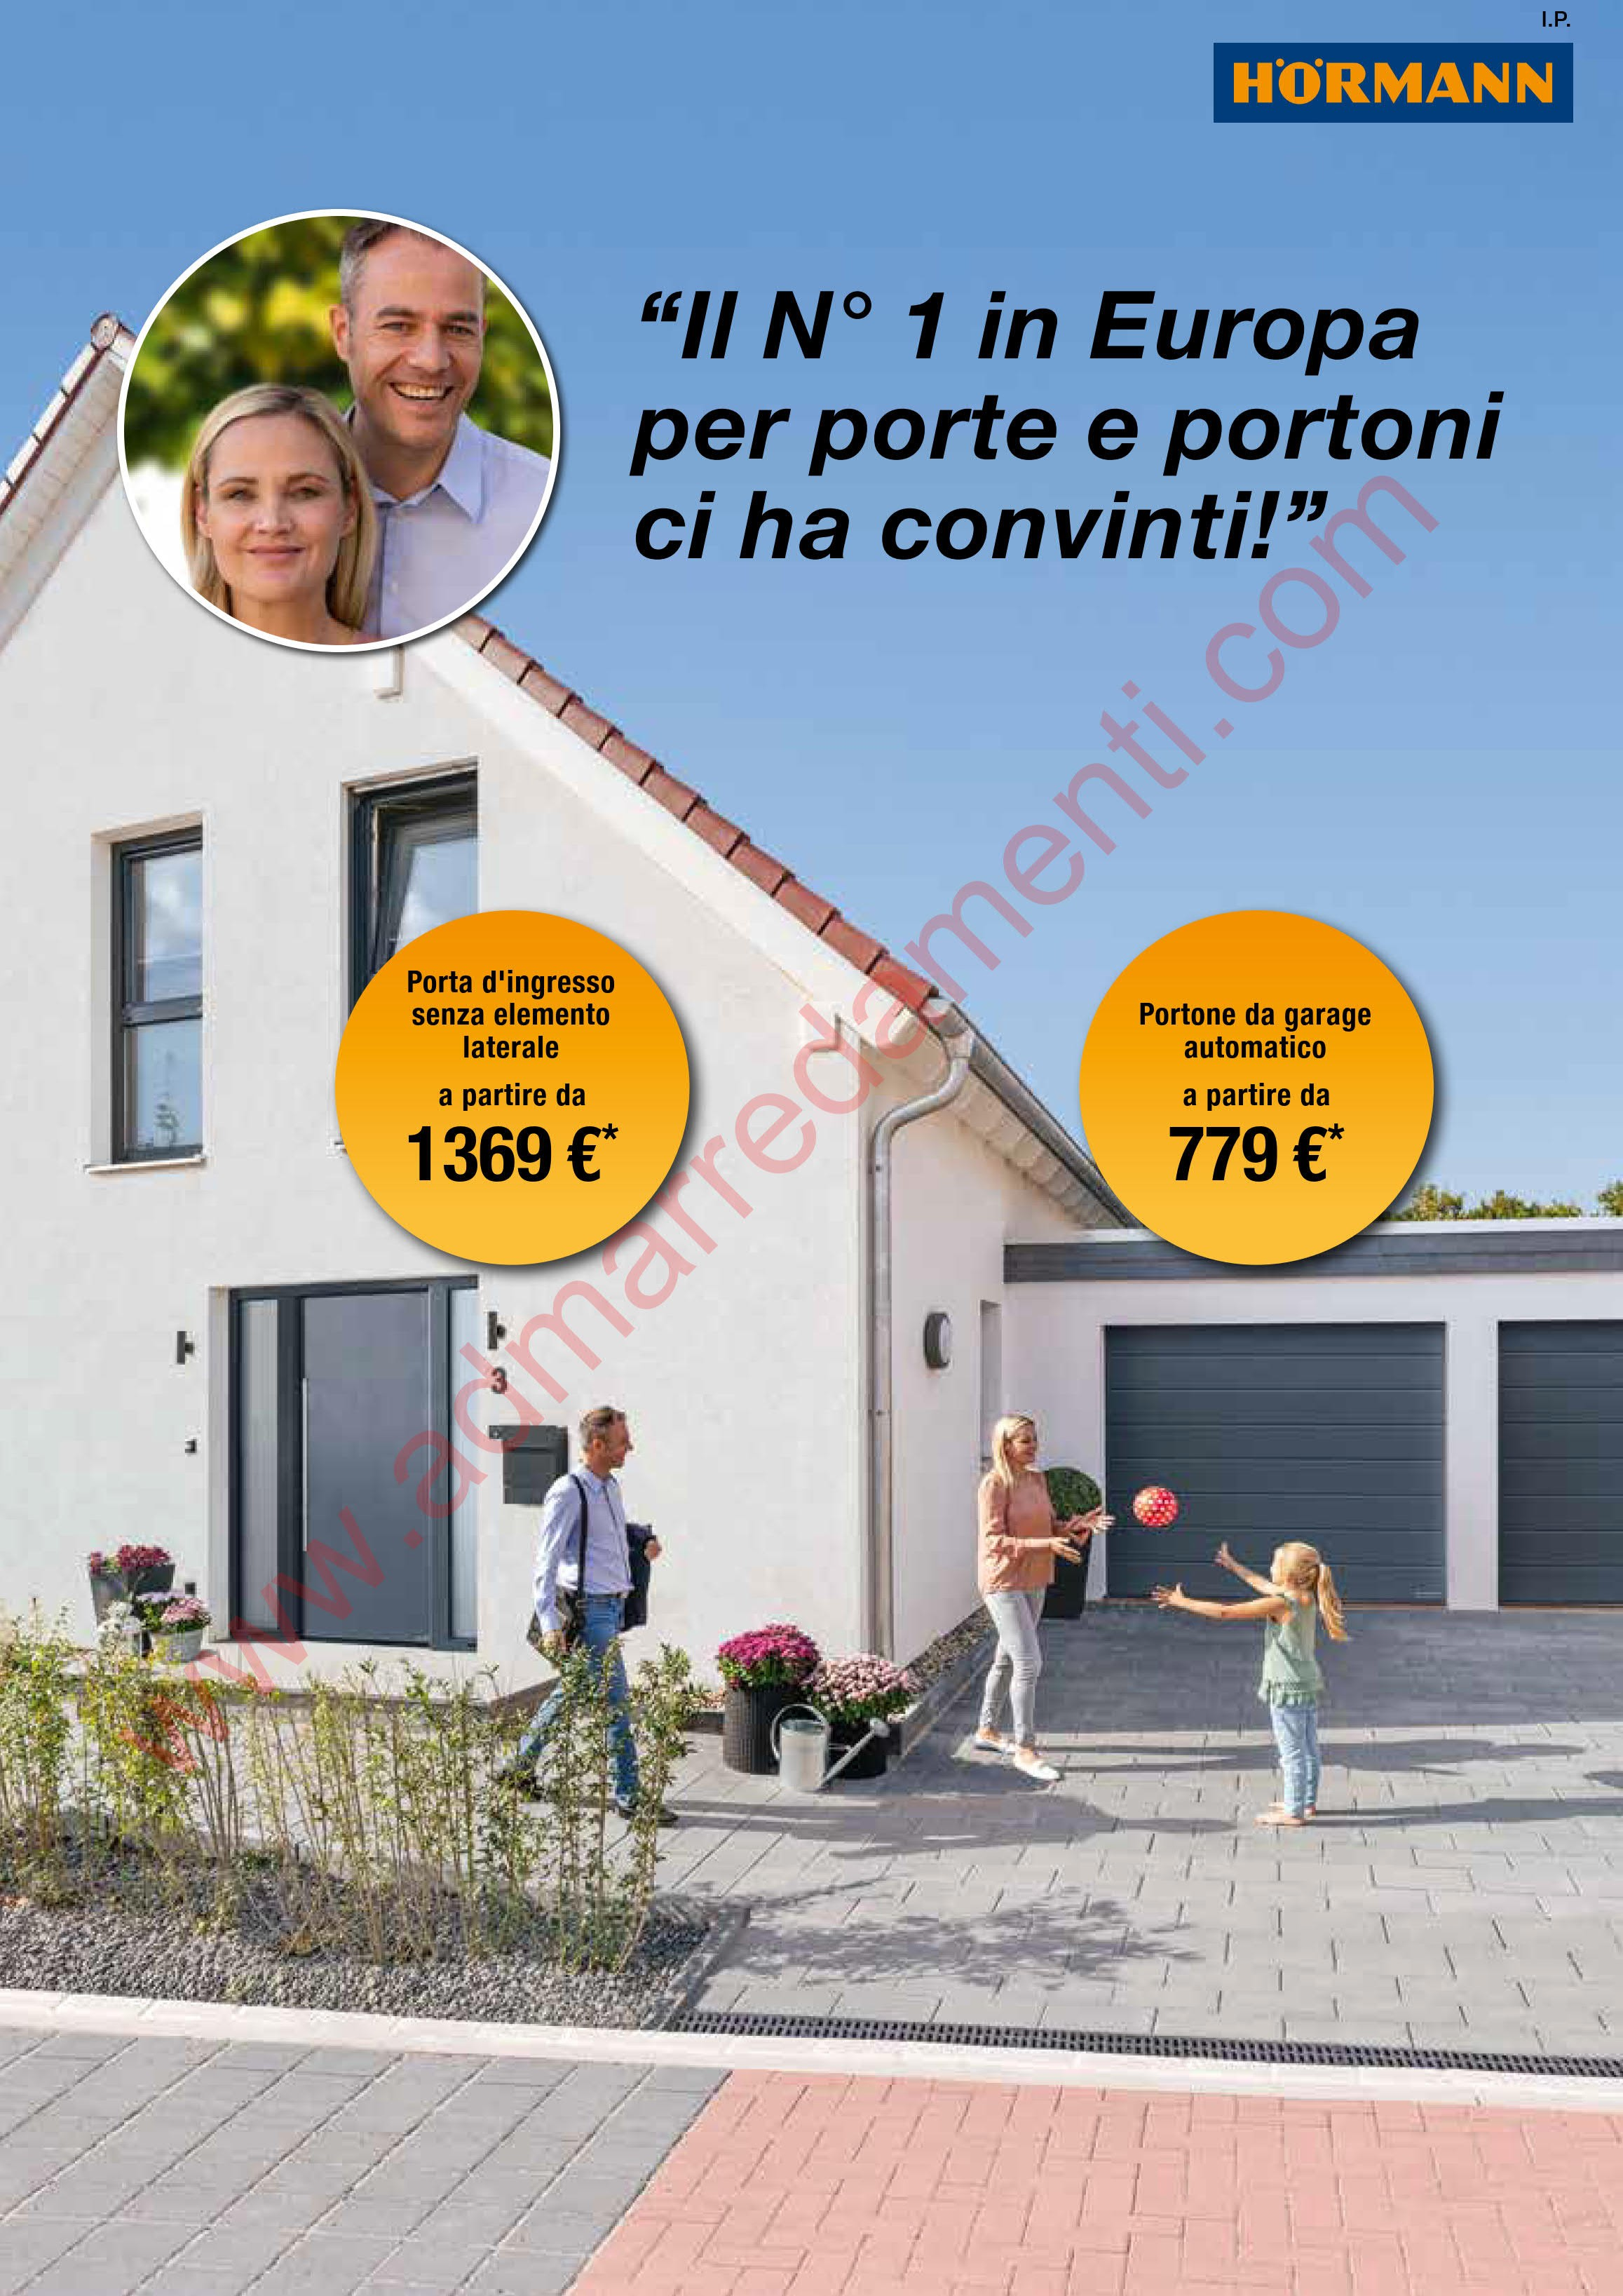 Hormann campagna pubblicitaria europa promotion 2018